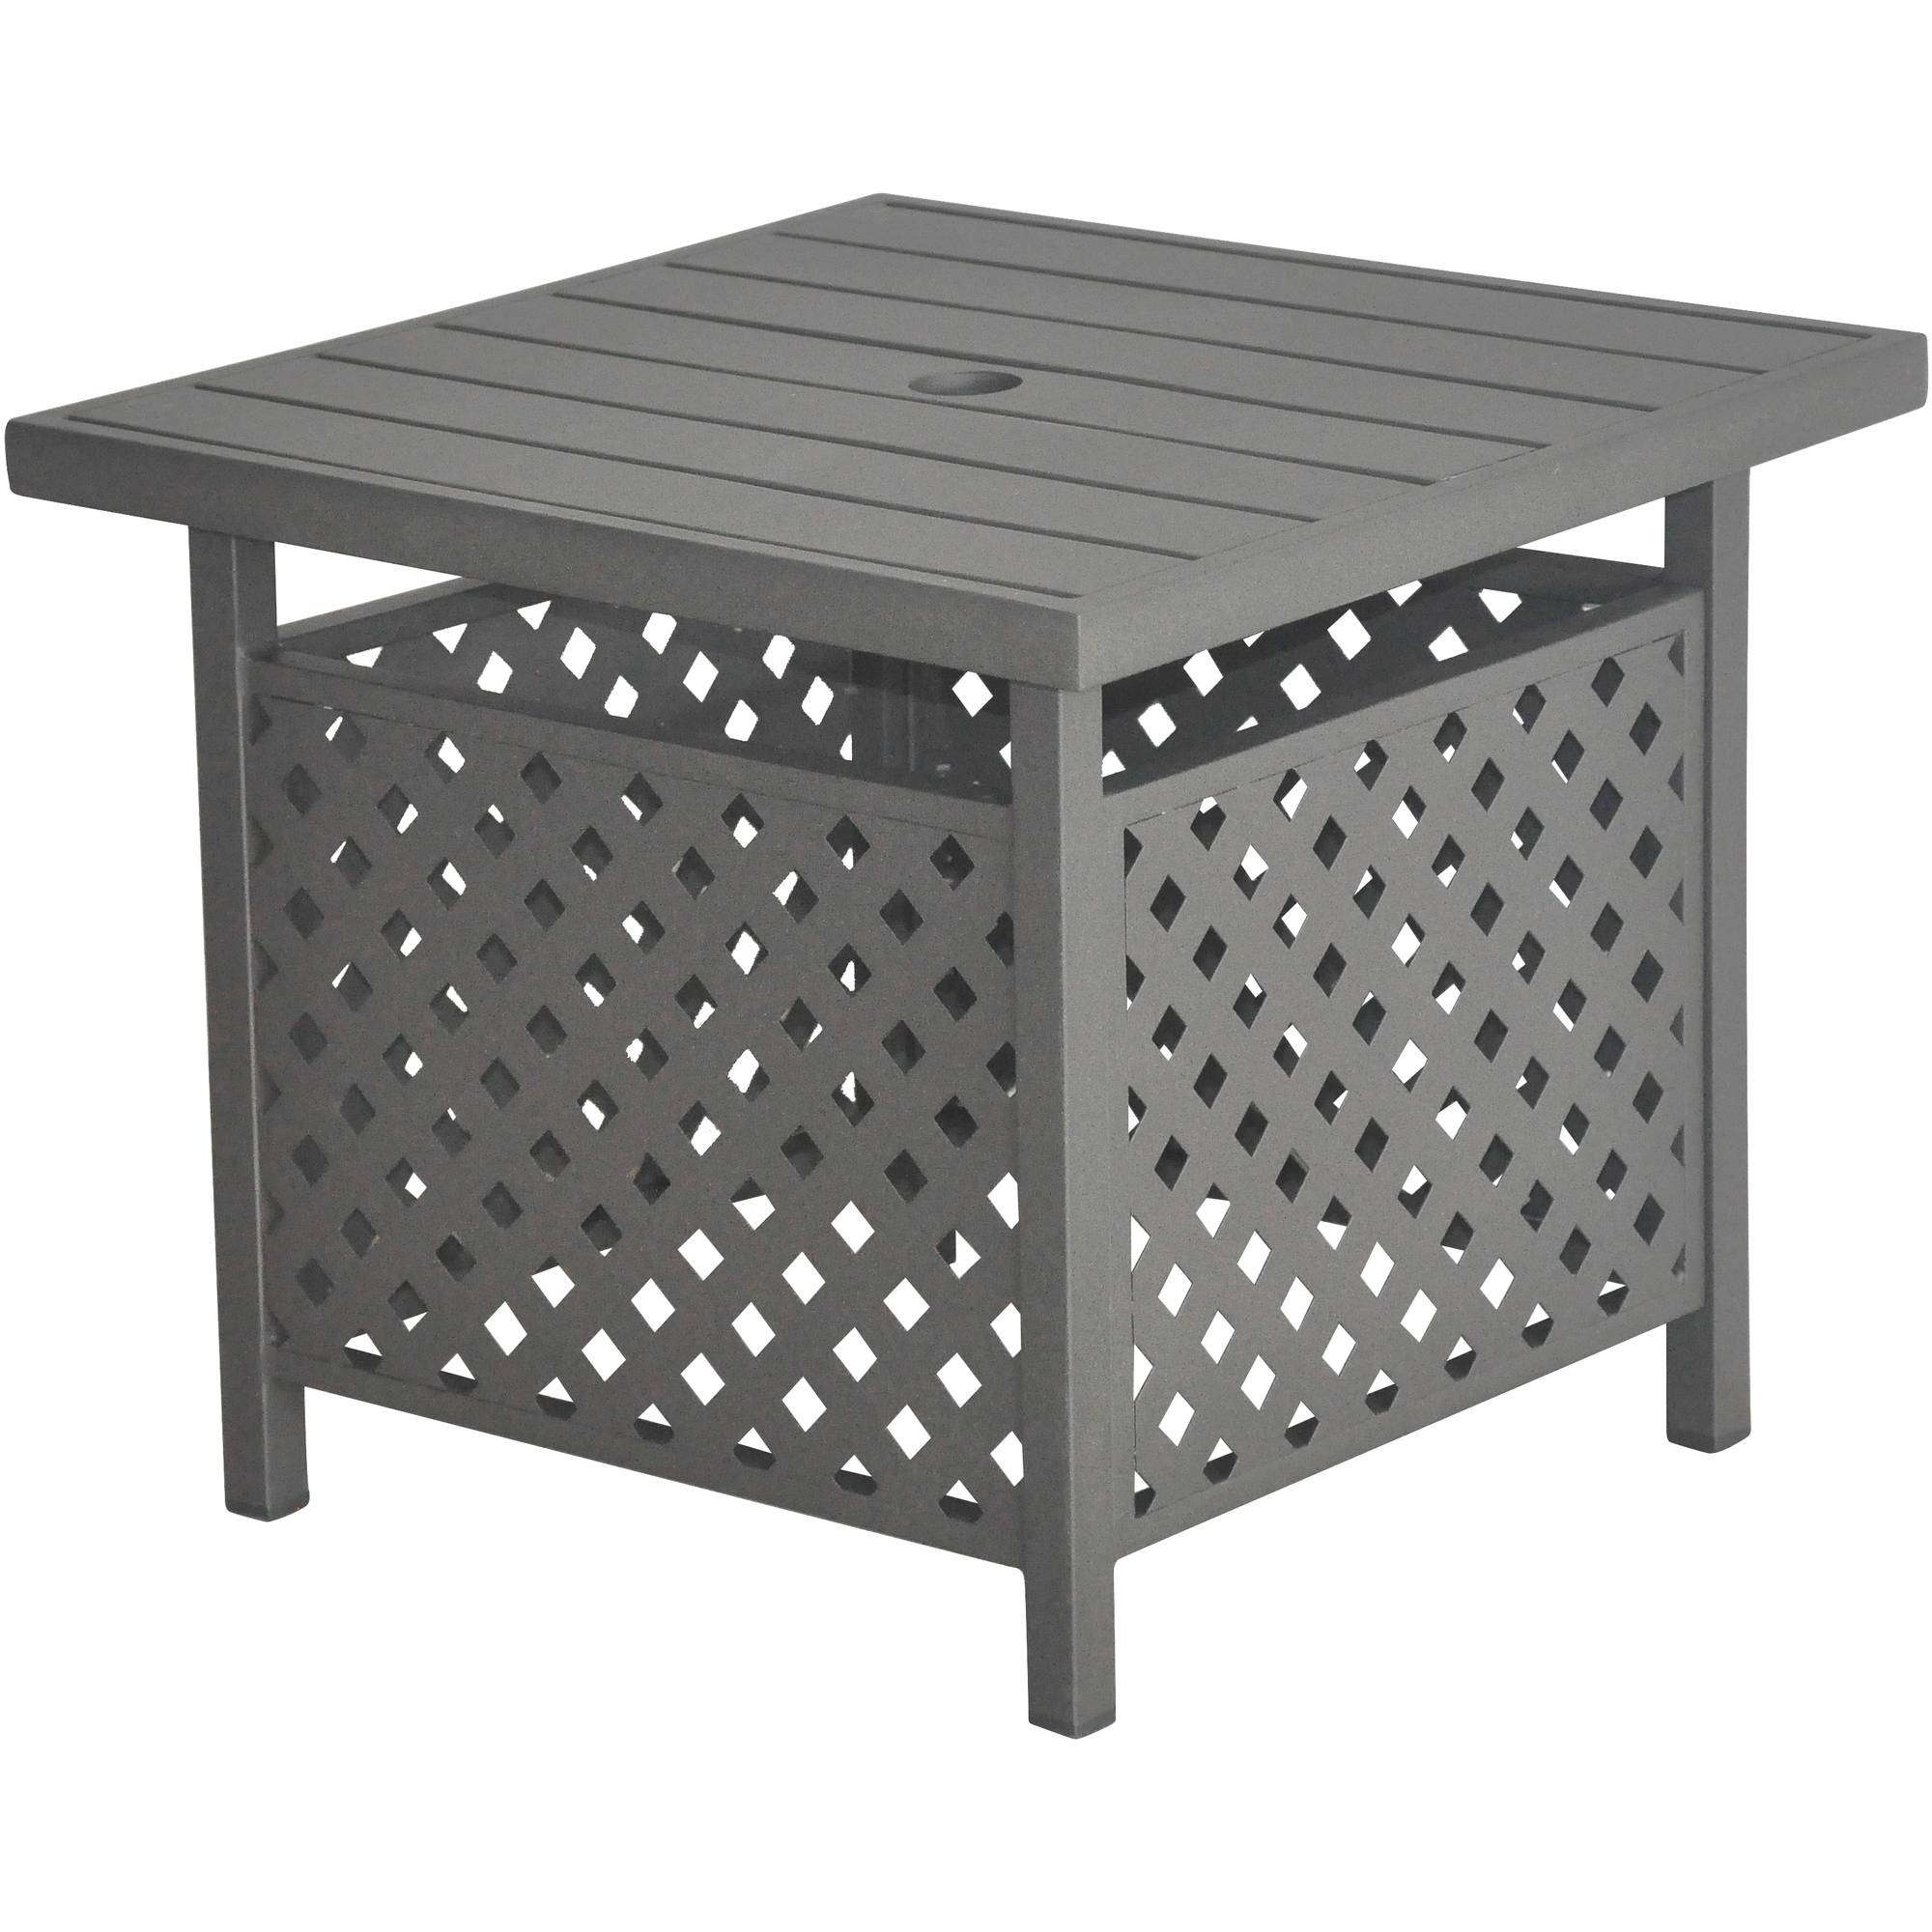 I Love Living Retro Glitz Glass/ Metal End Table – Walmart For Most Recent Retro Glitz Glass Coffee Tables (View 2 of 20)